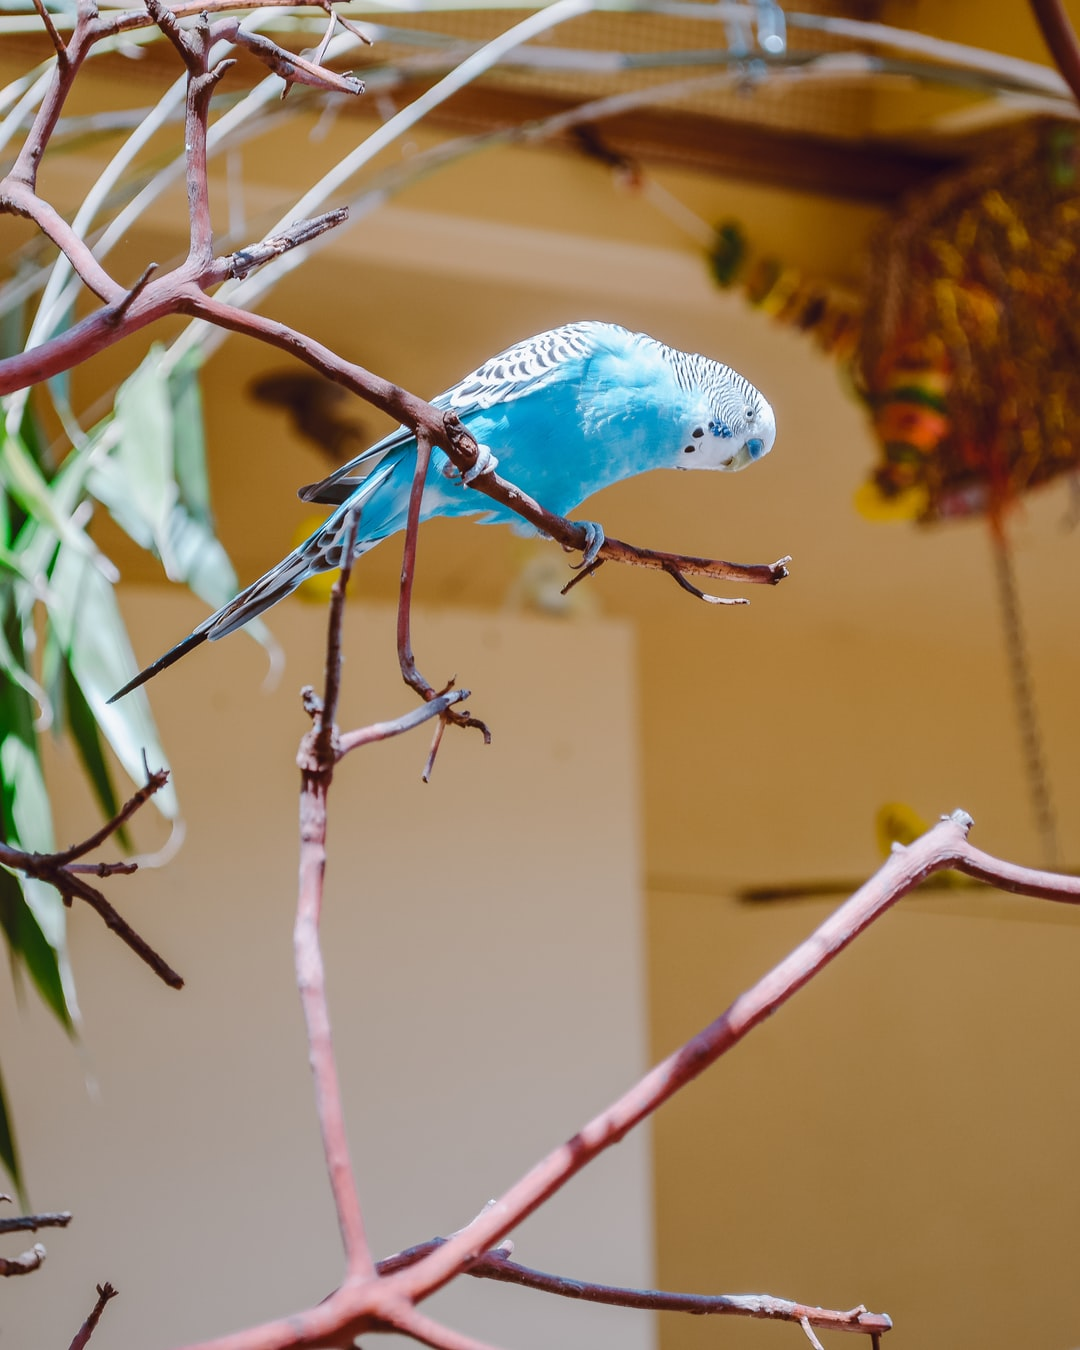 Feeding time at the Budgie House at Pt. Defiance Zoo